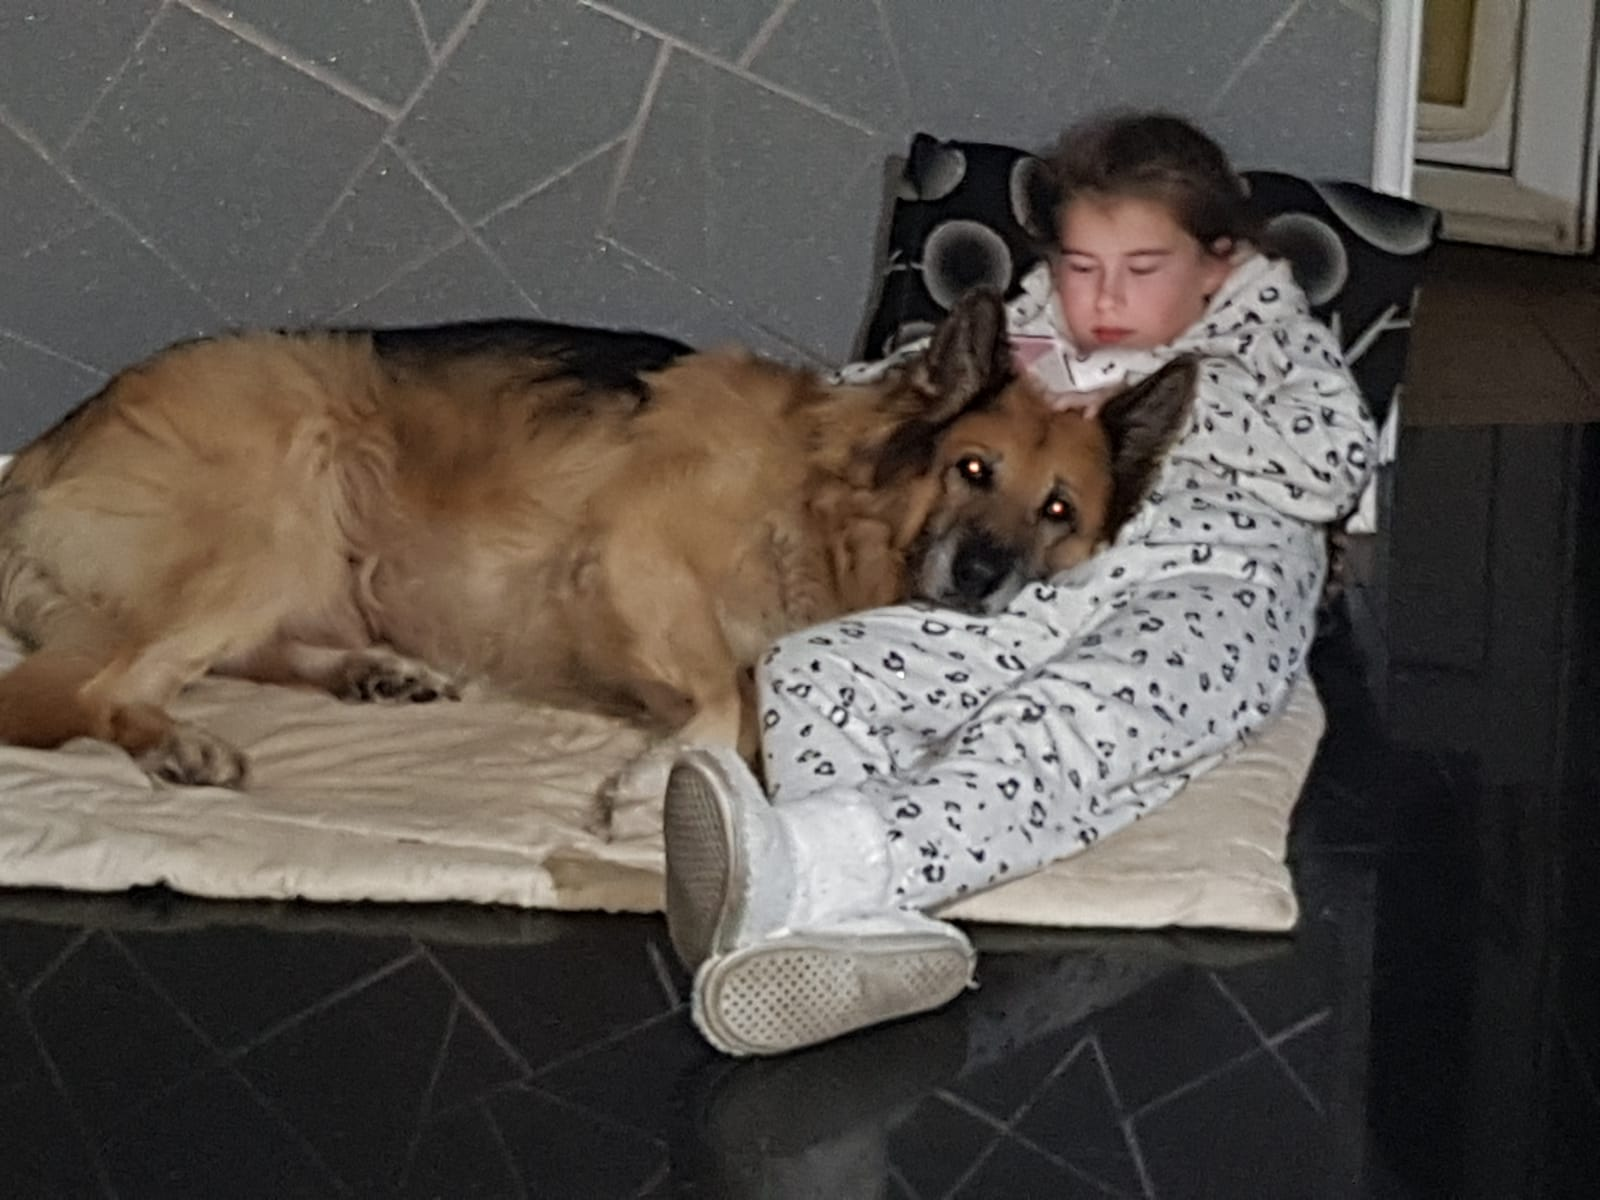 Leo the German Shepherd dog having a cuddle with his owner